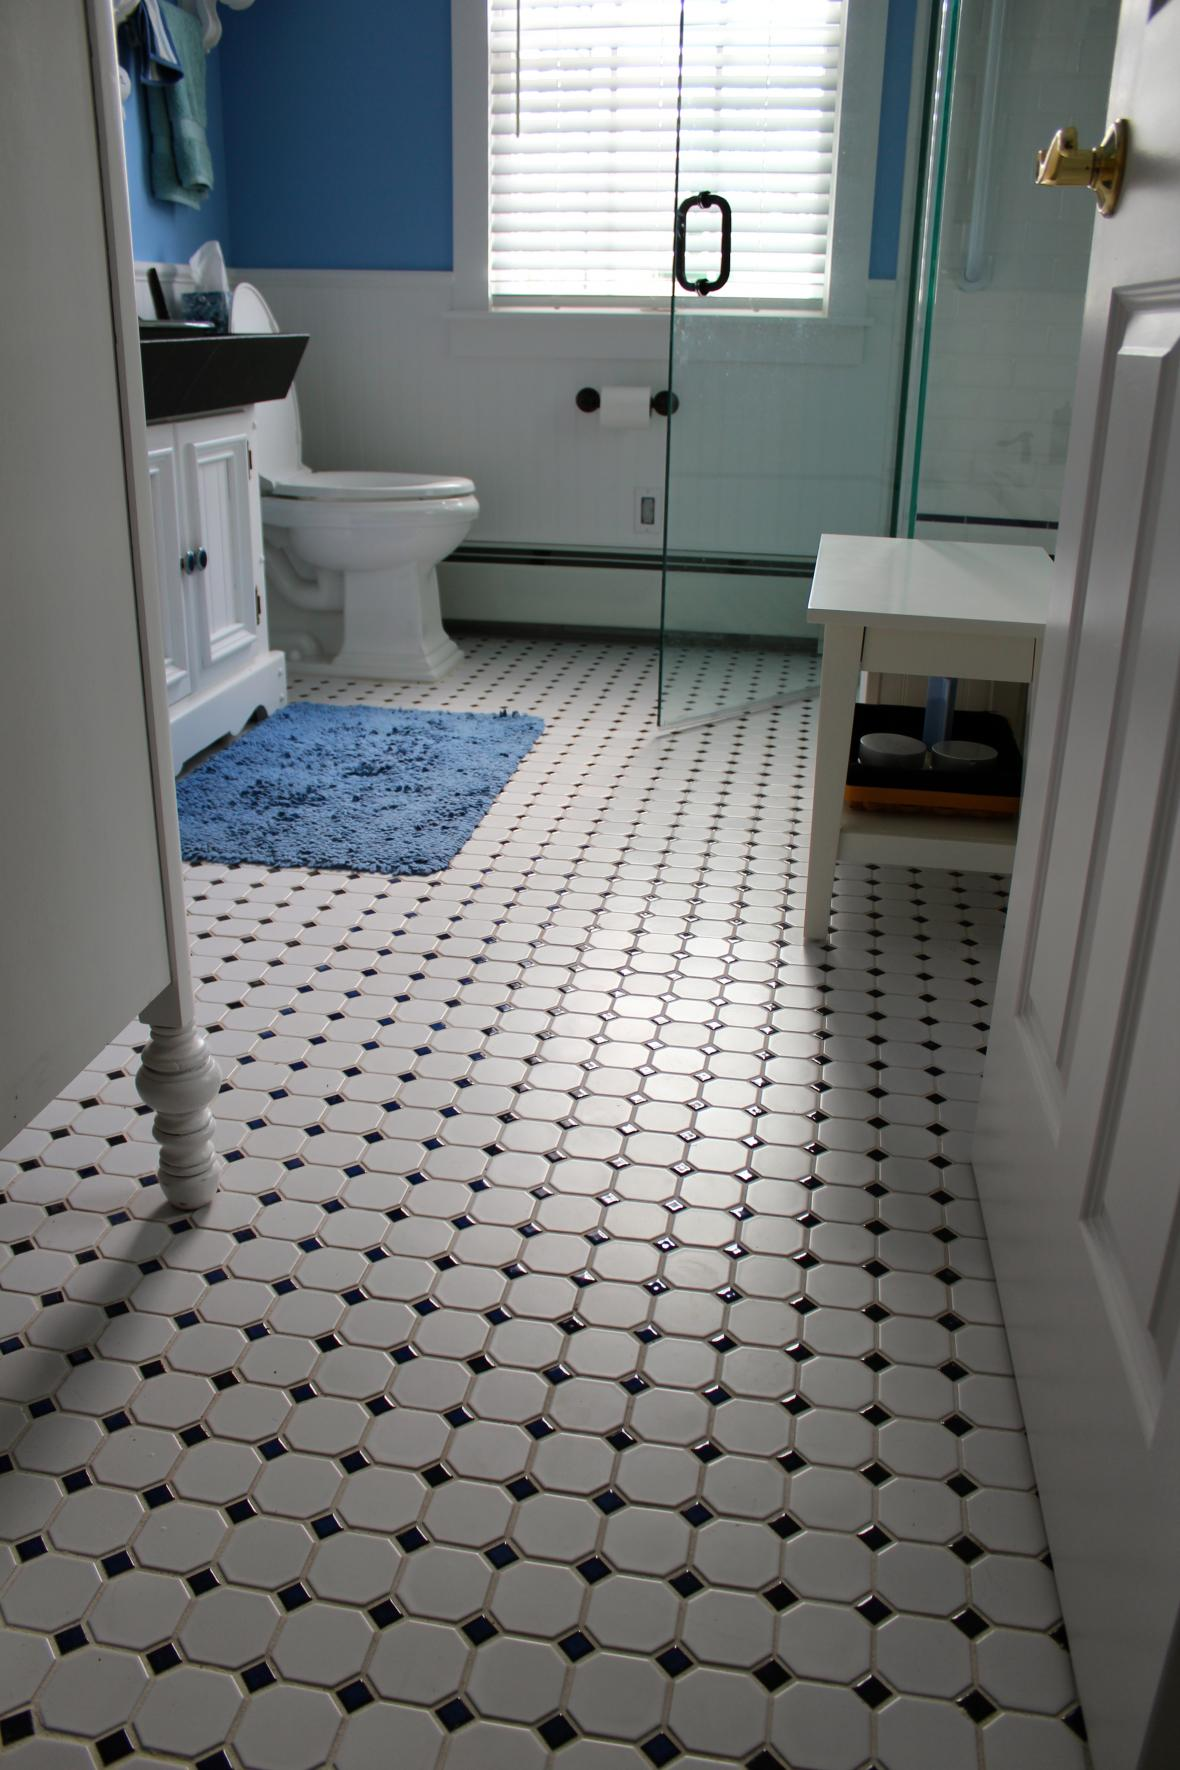 Floor Tiles Lifting In Bathroom : Vintage tile bathroom floor new jersey custom